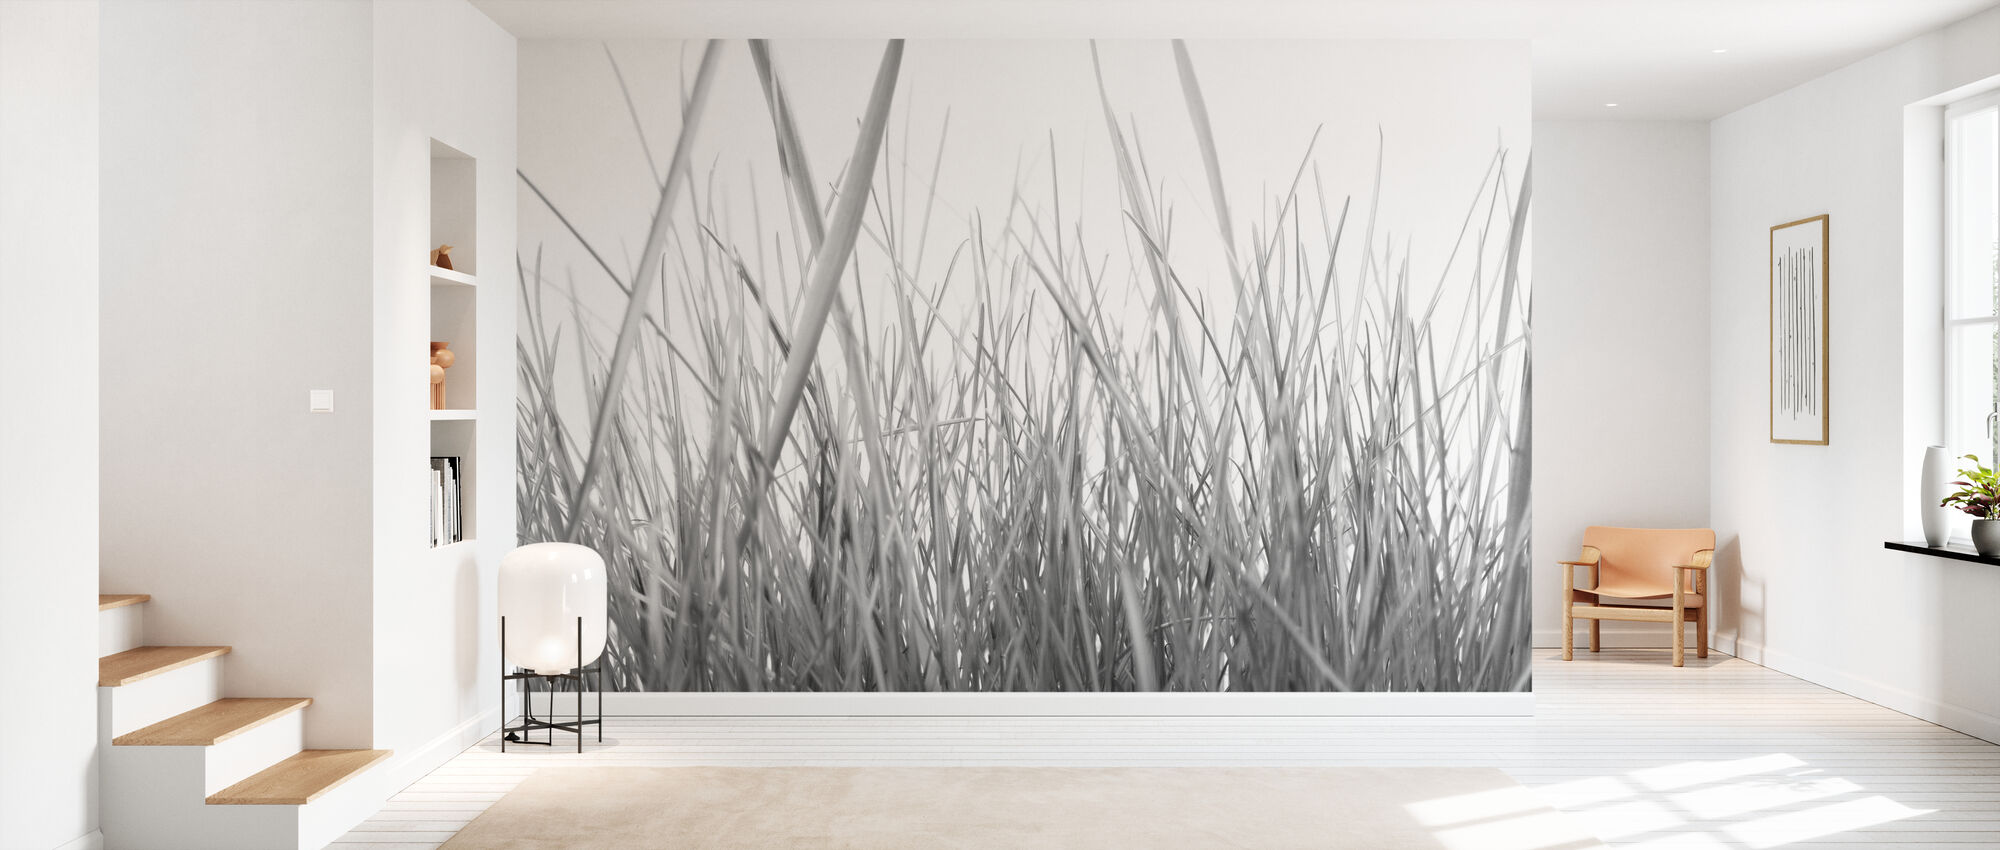 High Grass - b/w - Wallpaper - Hallway